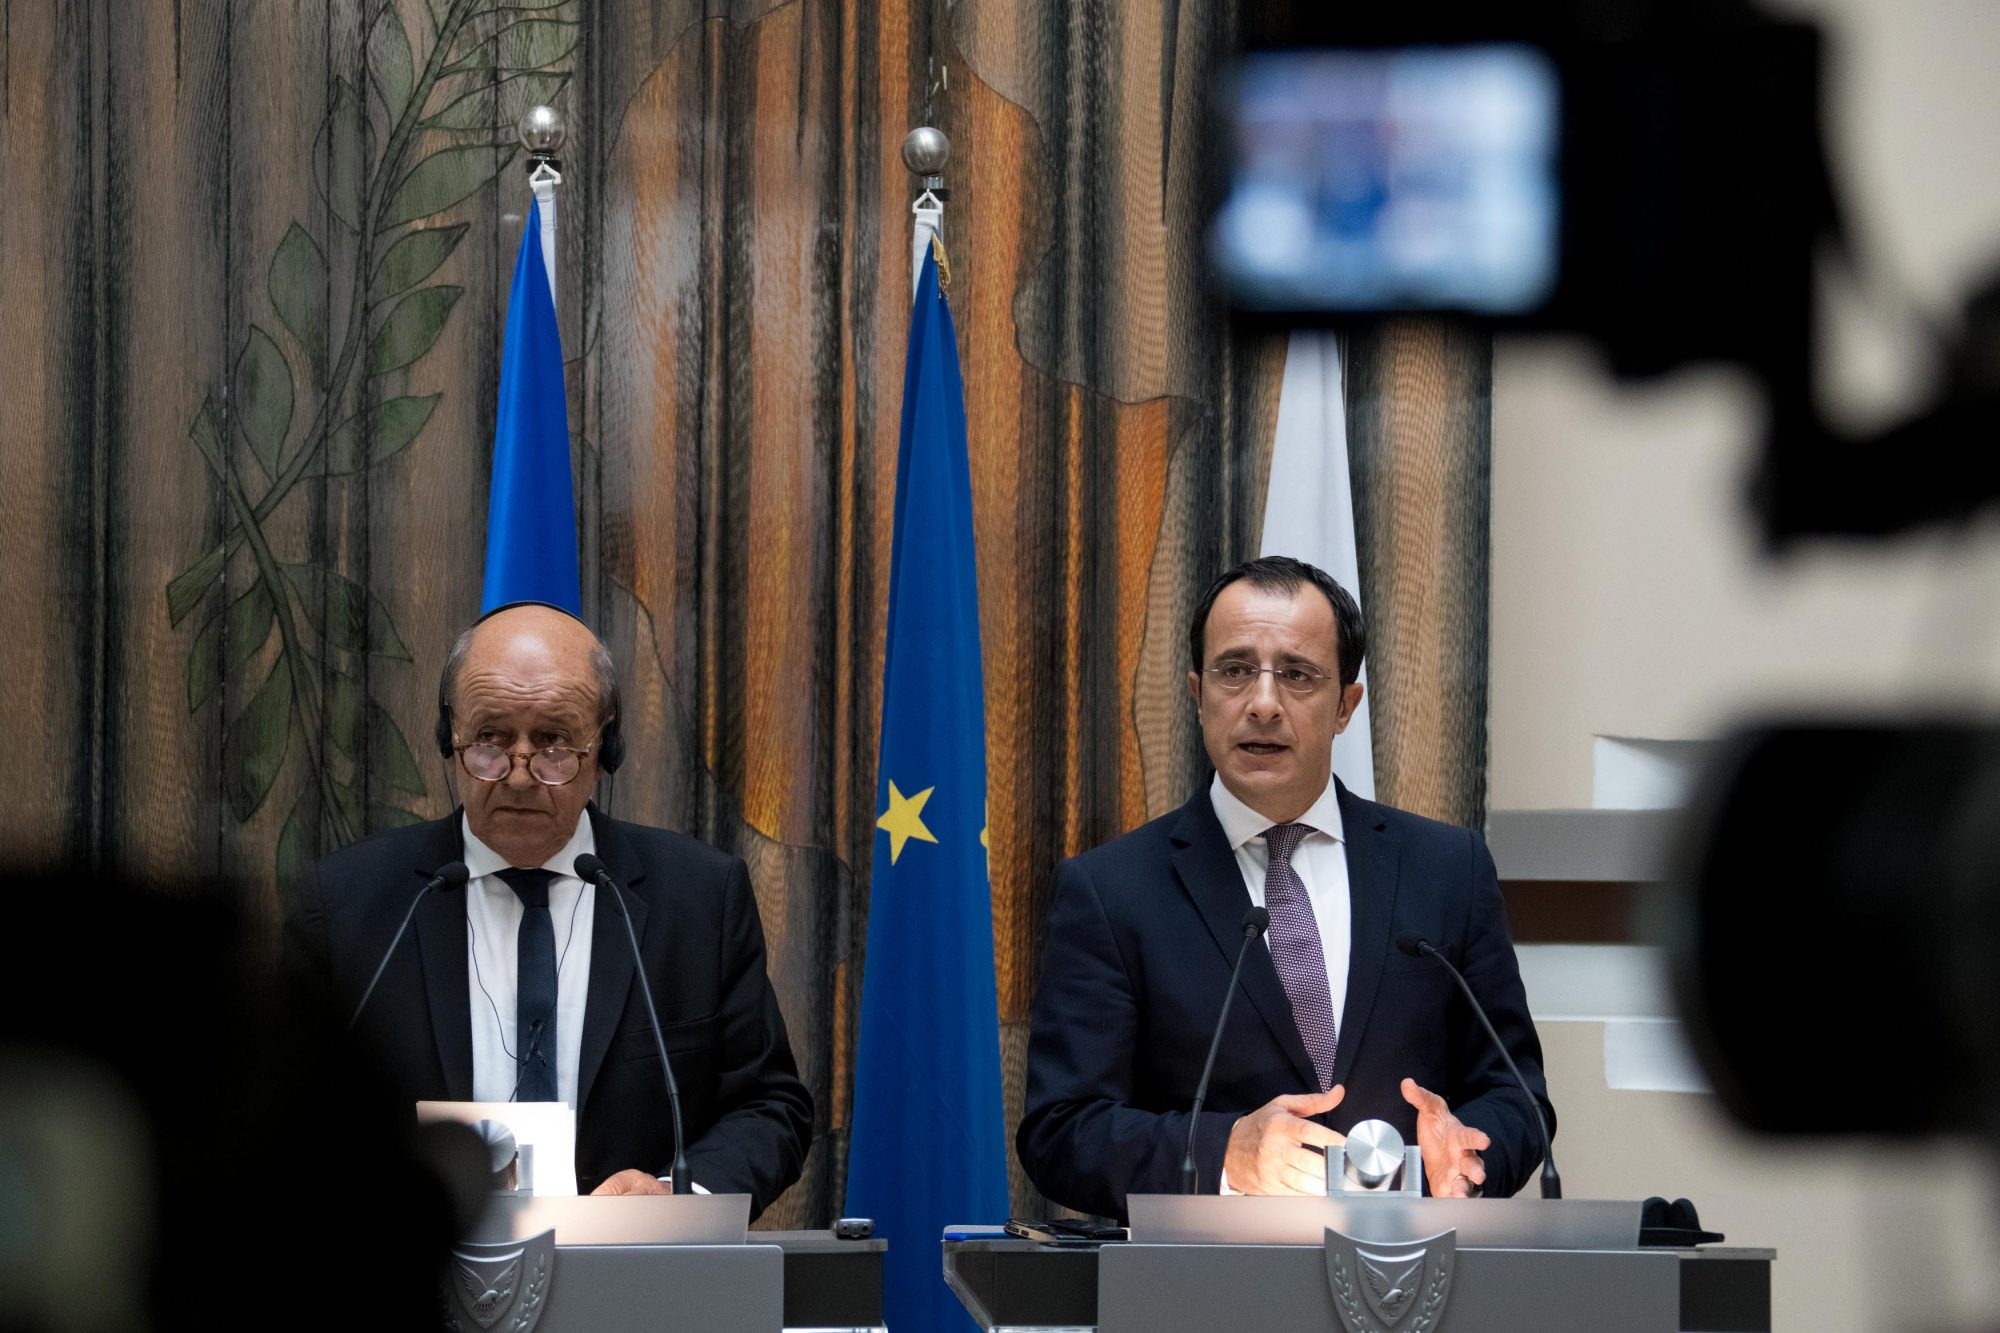 Broadening of the co-operation between Cyprus and France